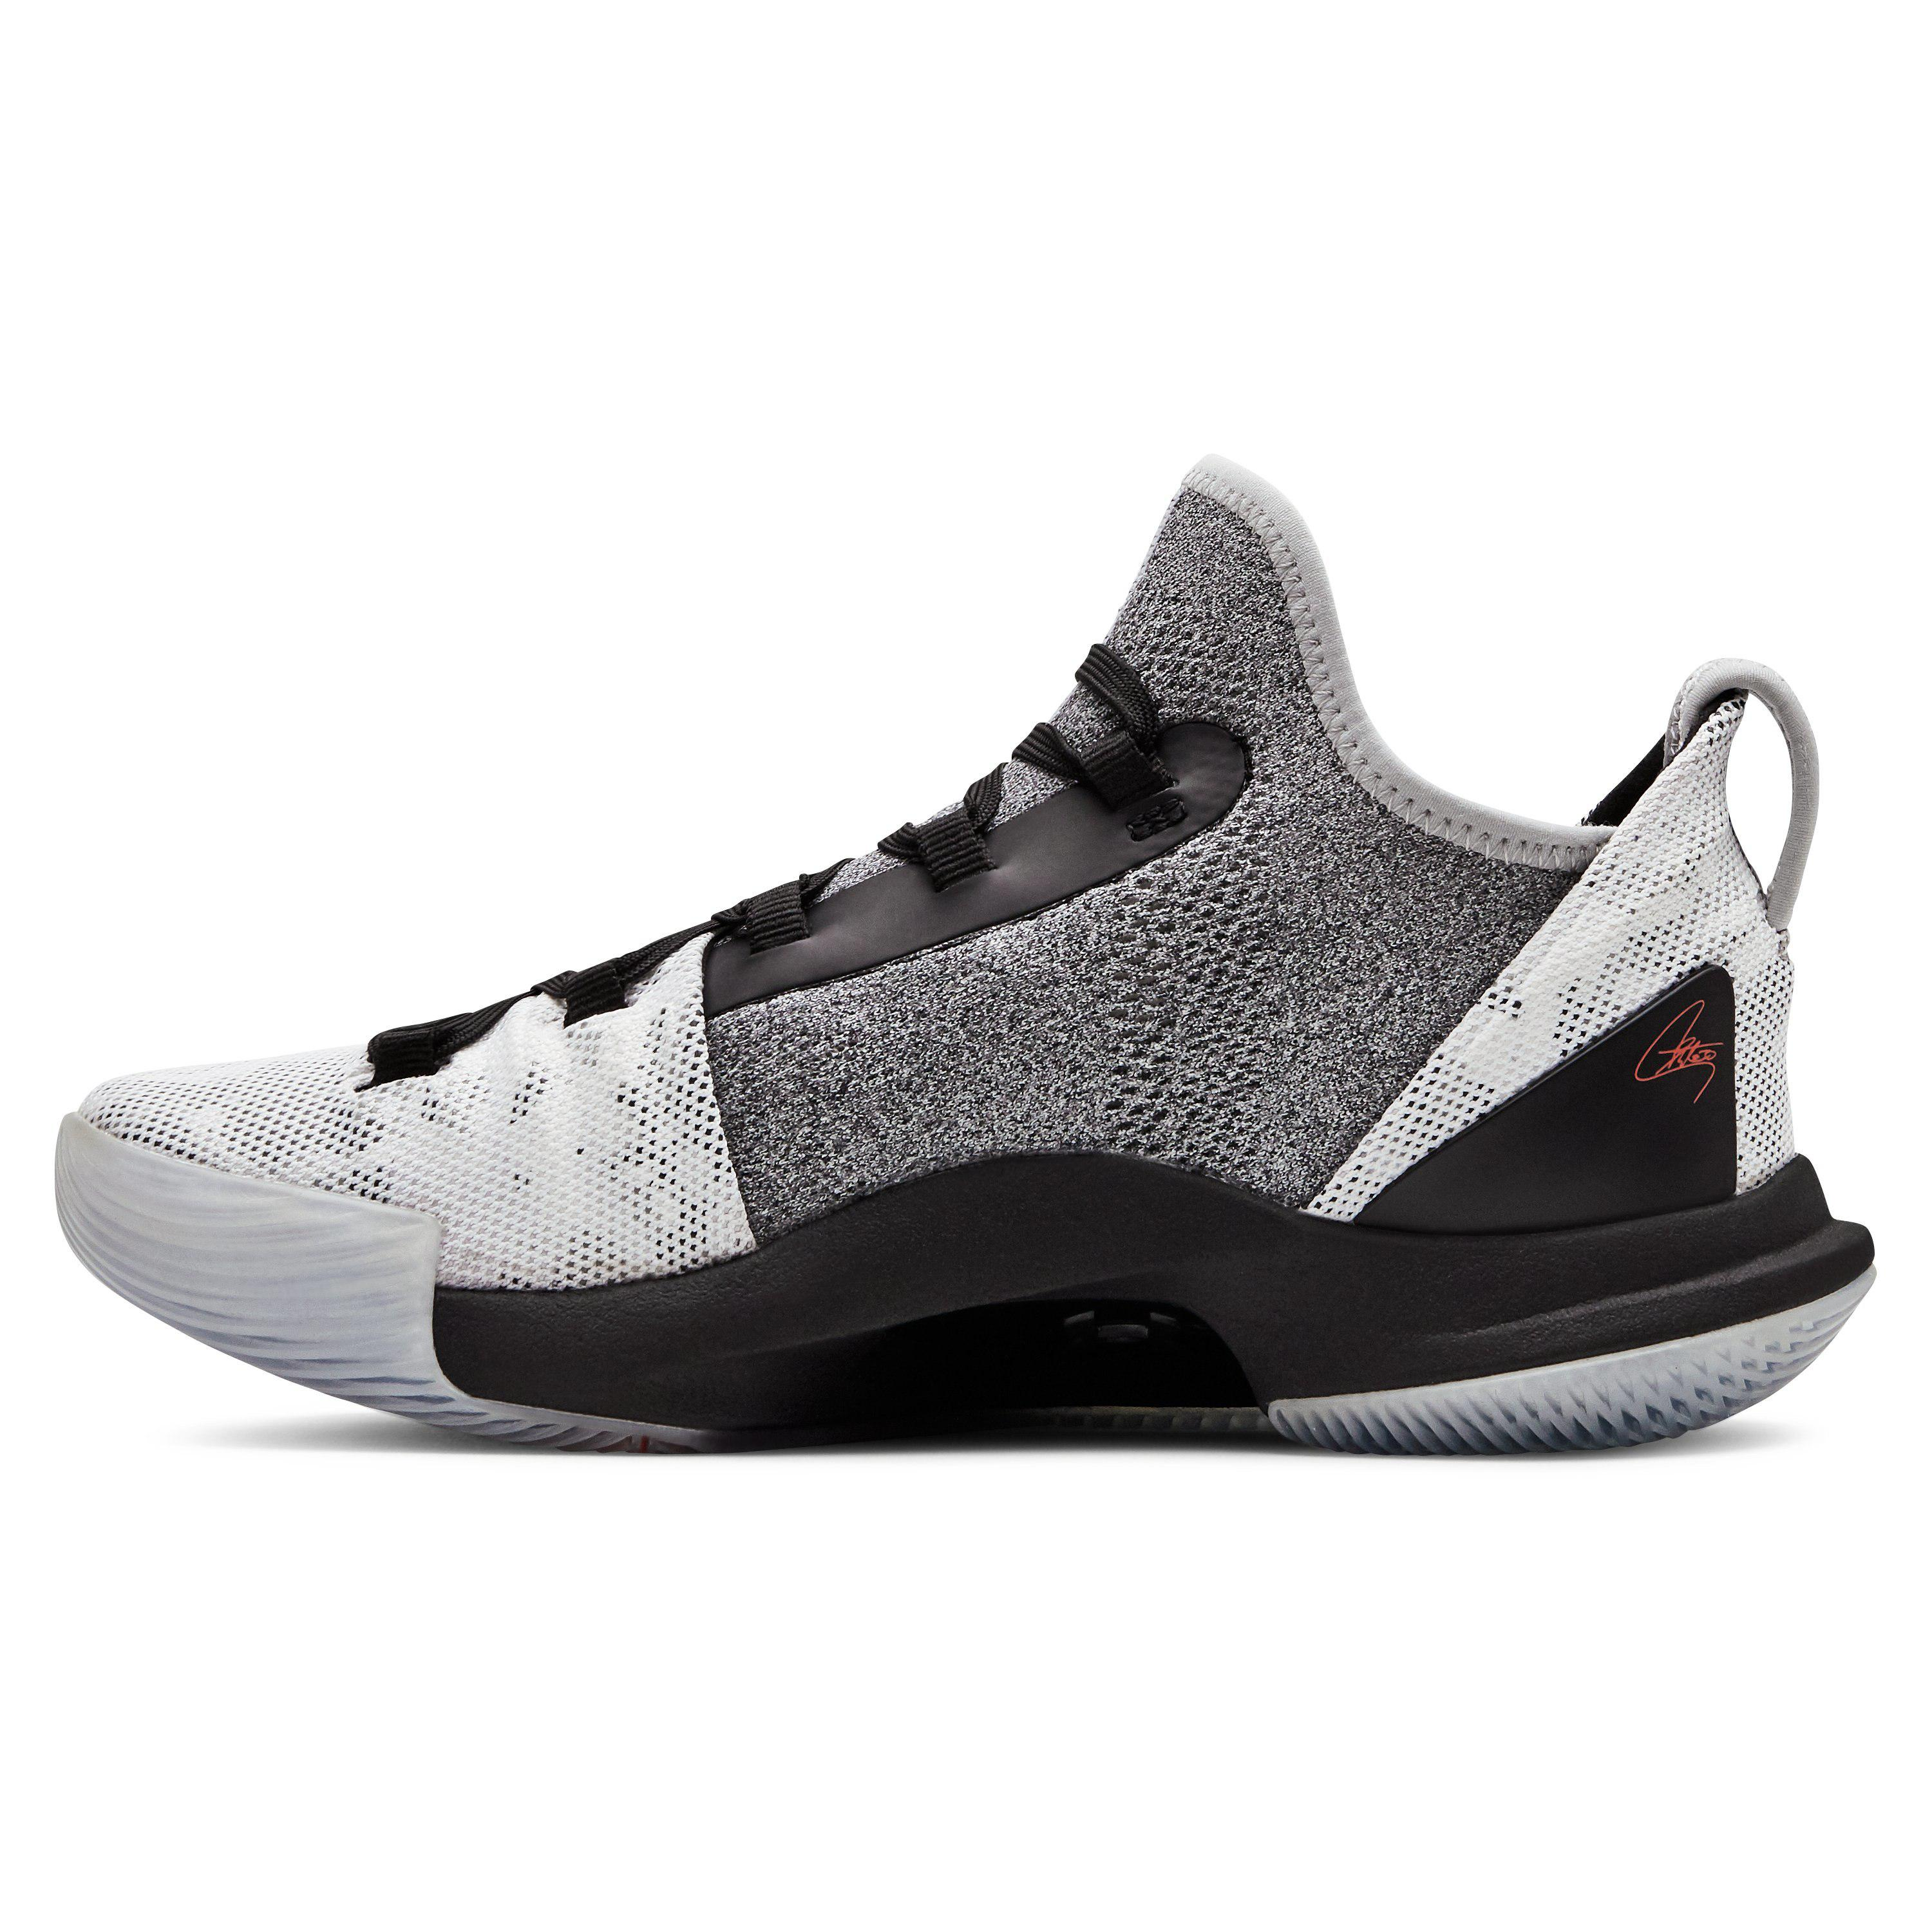 1f067d05cb2d Under Armour Grade School Ua Curry 5 Basketball Shoes in Black for ...